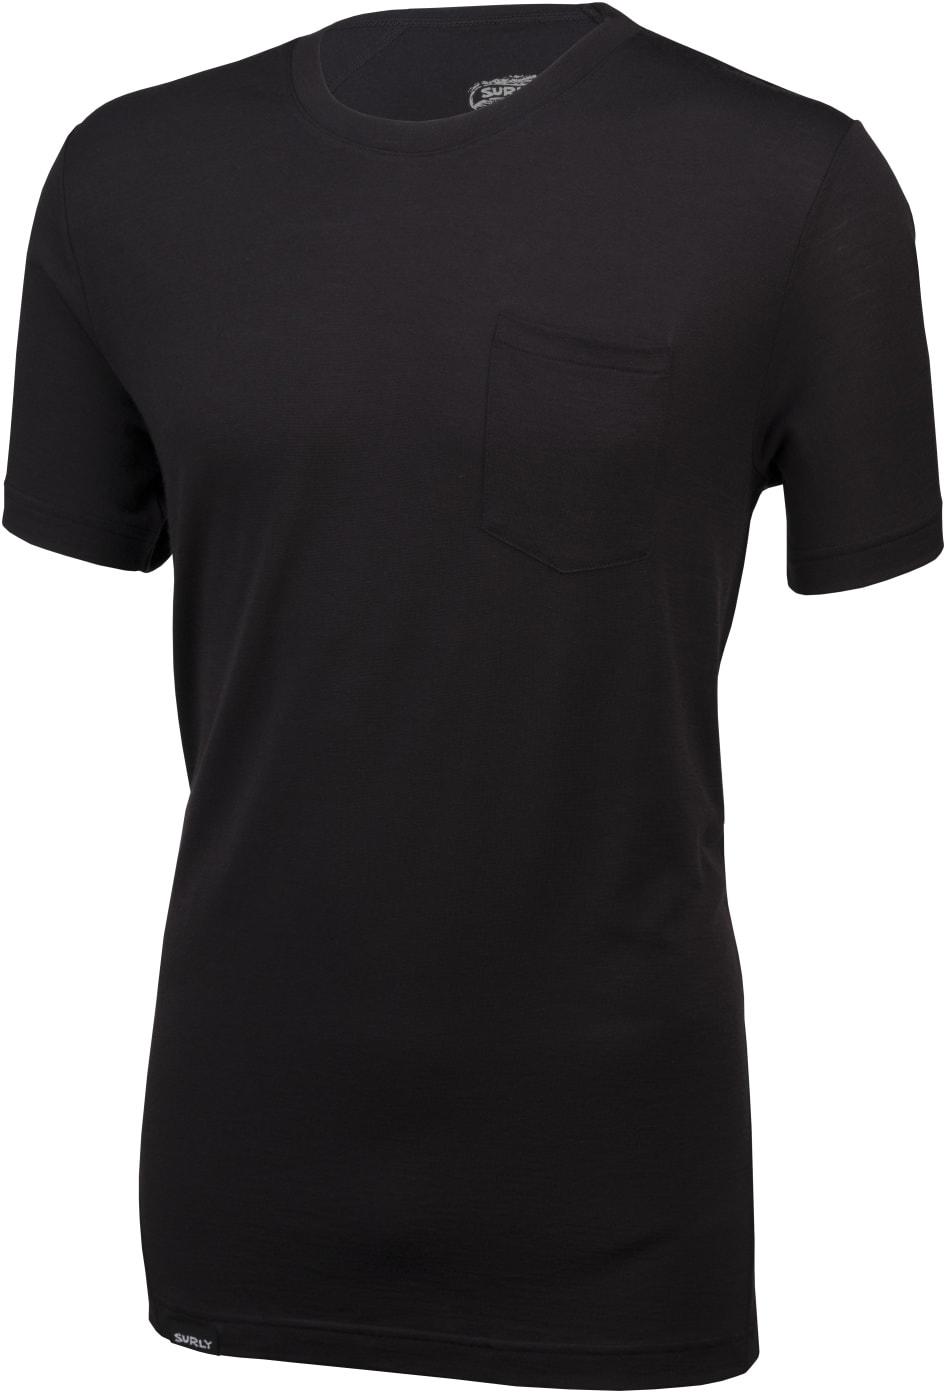 Surly Wool Pocket T - black - front view